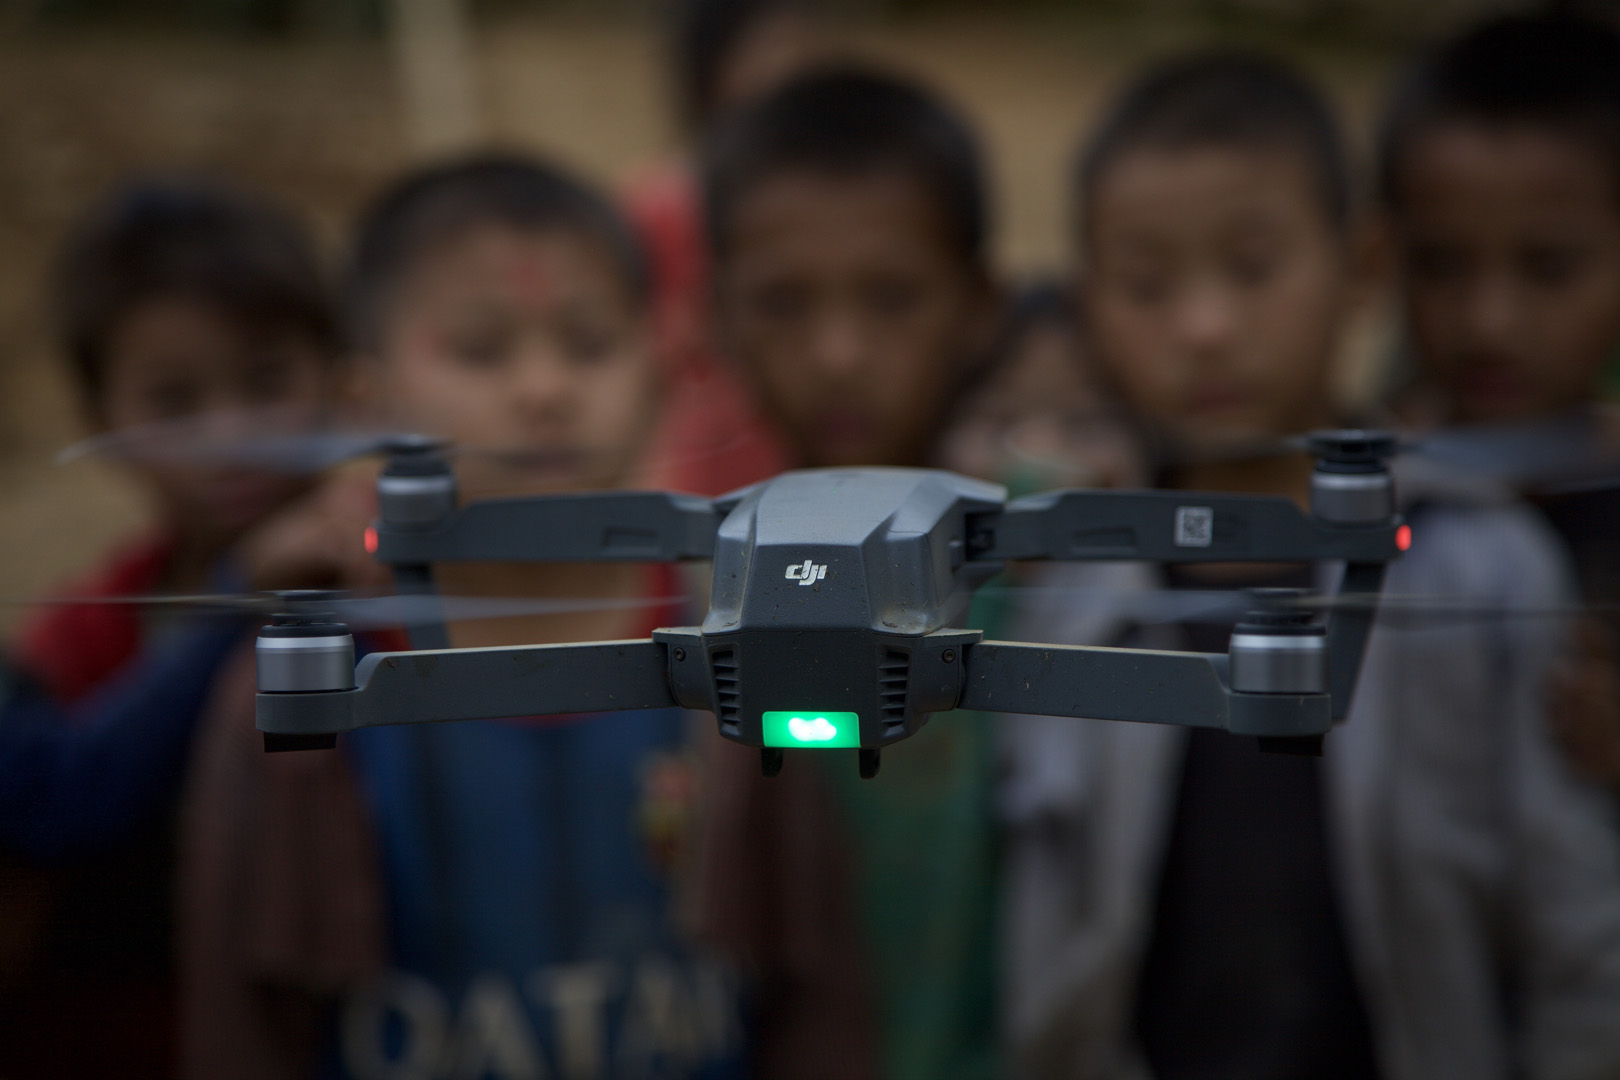 Hmong boys and their first drone